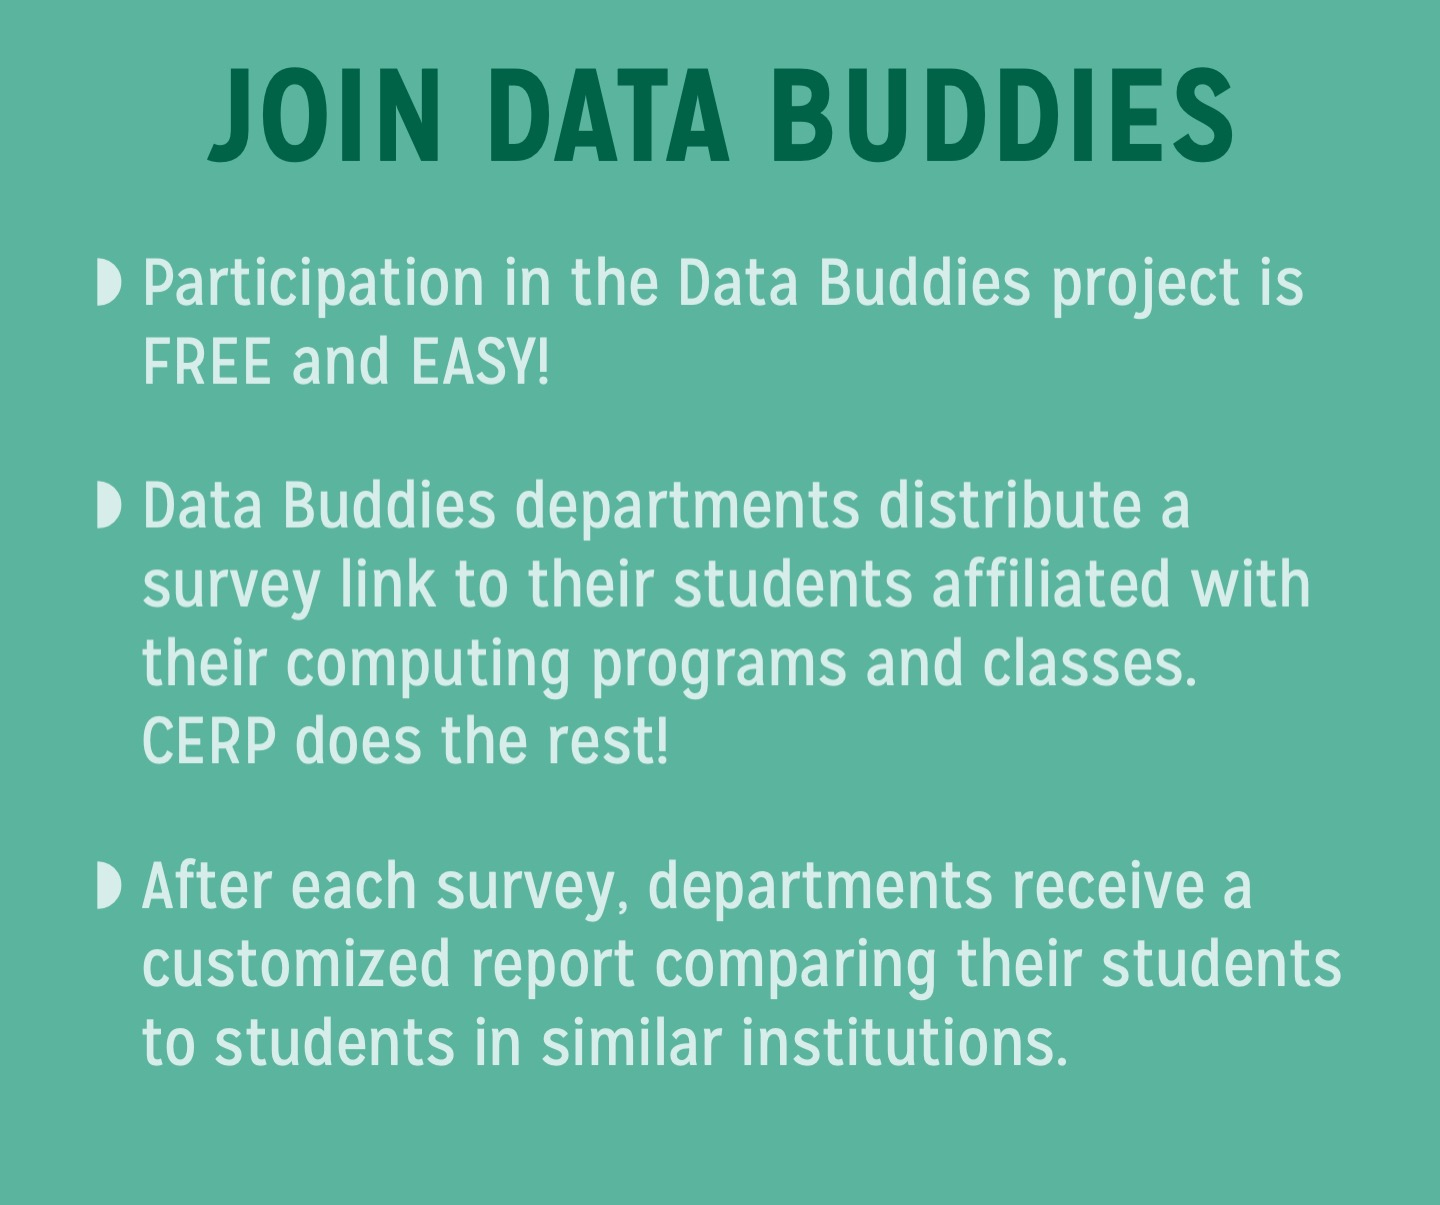 Join Data Buddies